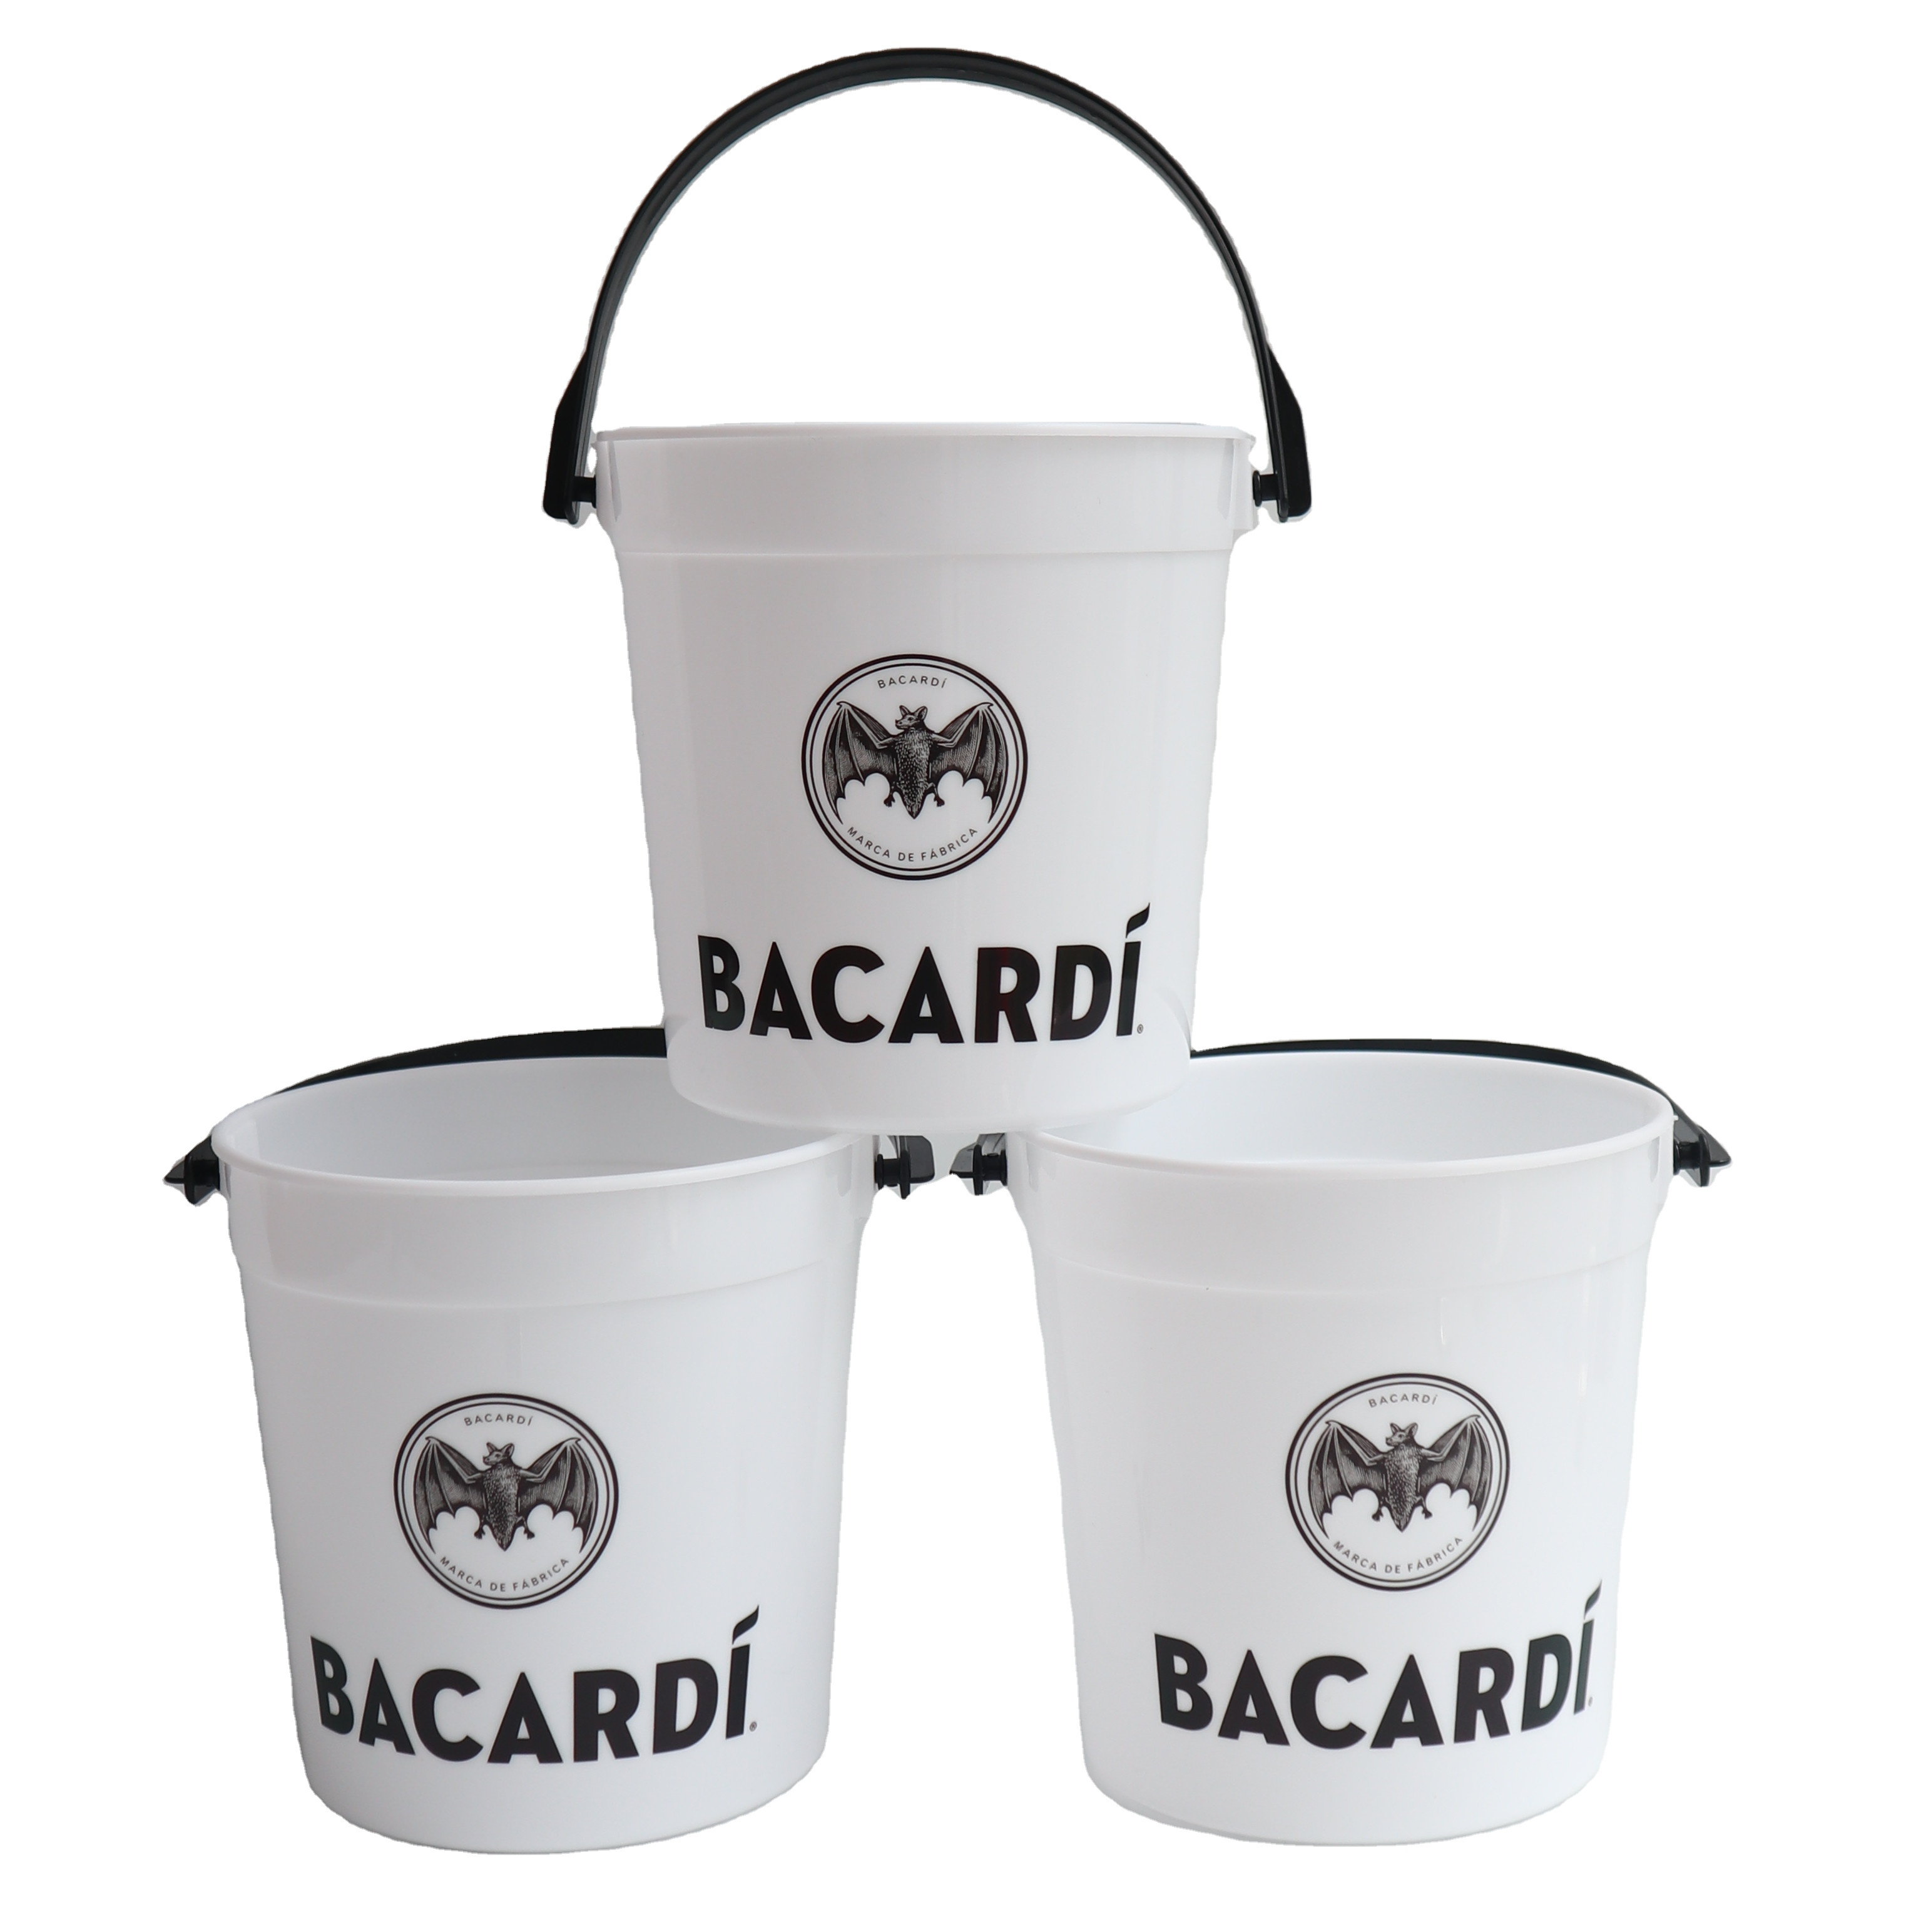 Plastic 32 Oz Pail With Handle Punch Buckets Drink Cups Buy 32 Oz Pail With Handle 32oz Rum Bucket Malibu Rum Bucket Product On Alibaba Com